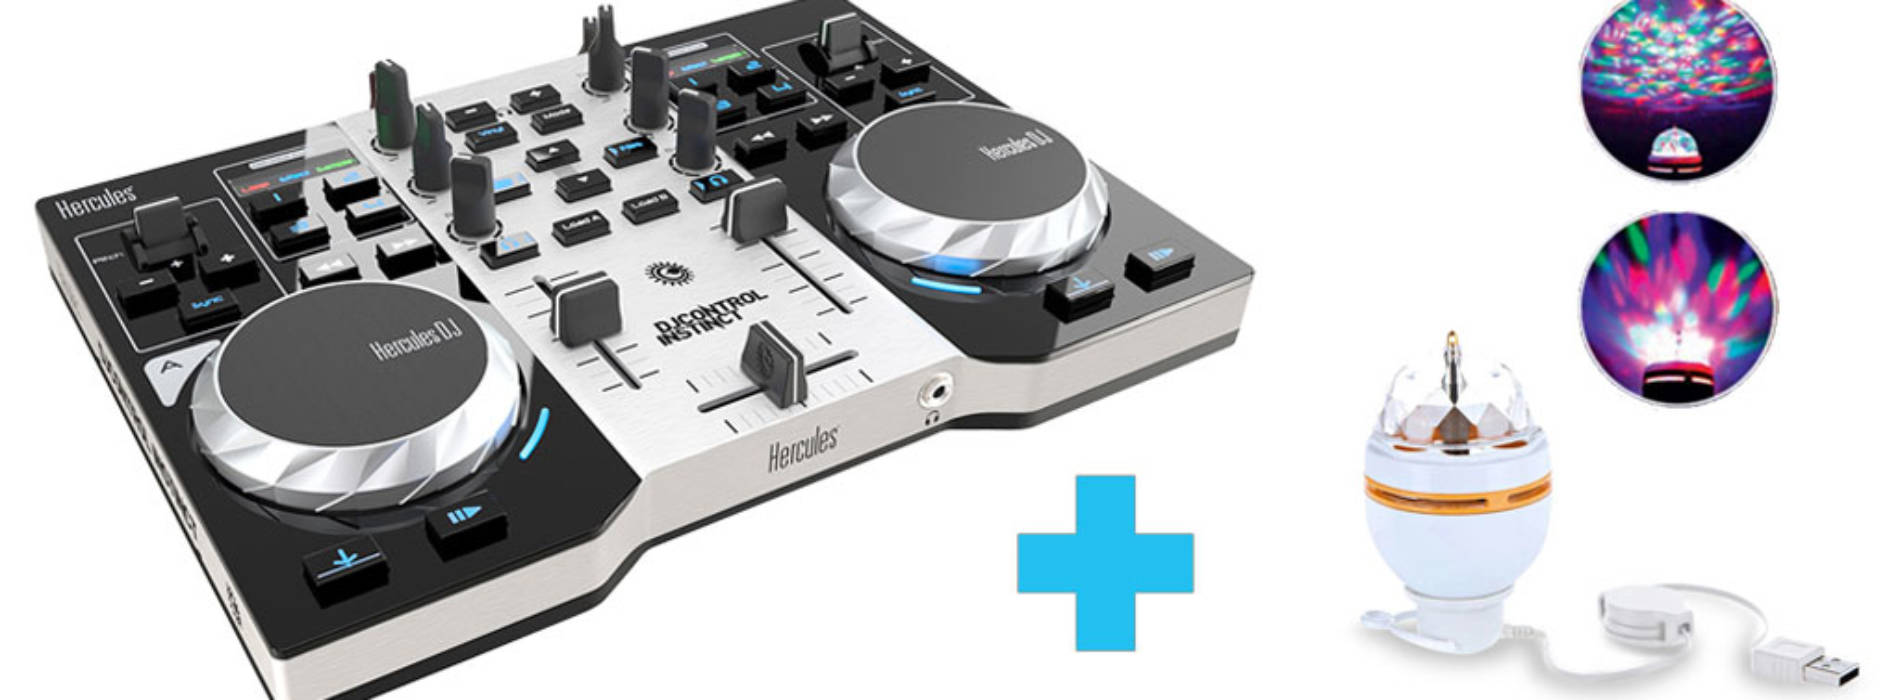 Concurso: Hercules DJControl Instinct Party Pack